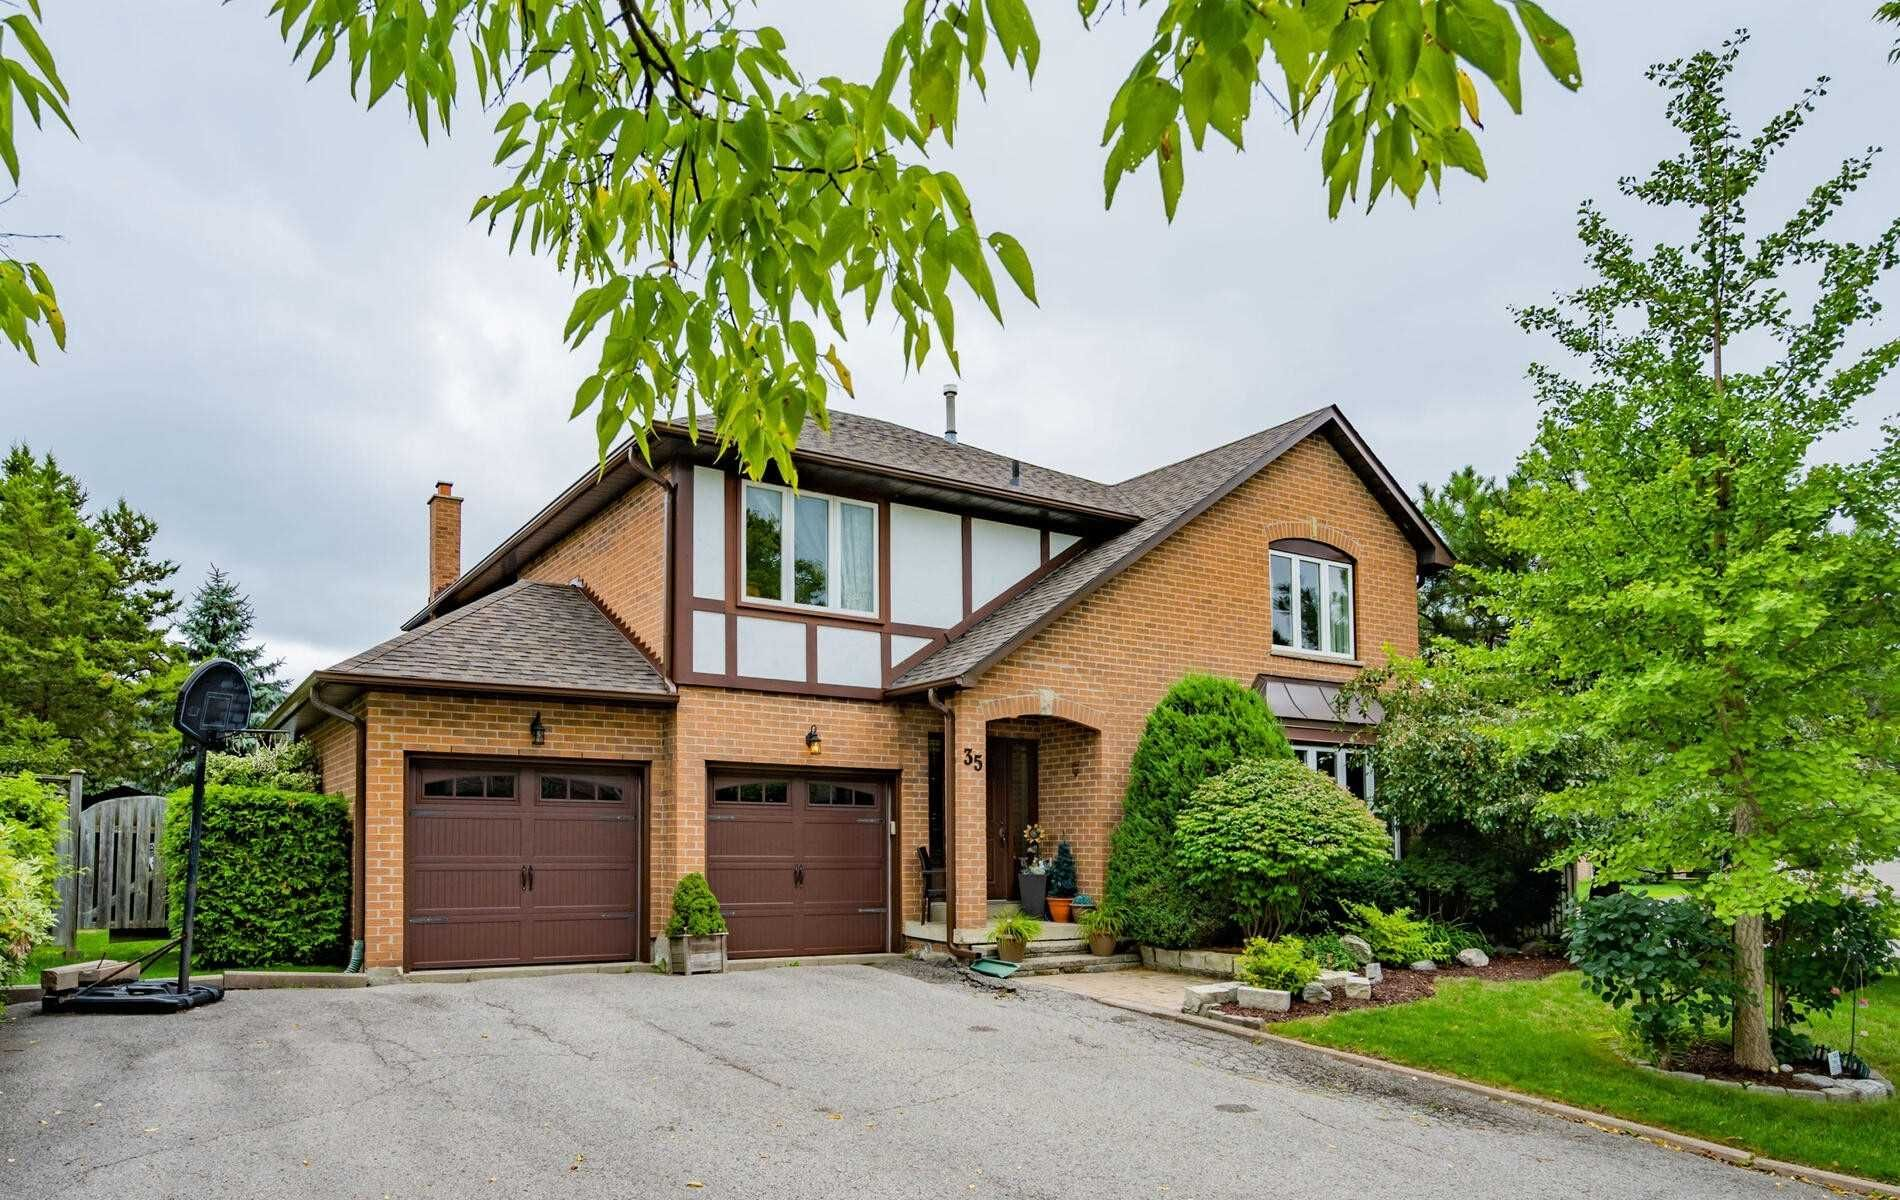 Main Photo: 35 Ashfield Drive in Richmond Hill: Oak Ridges Lake Wilcox House (2-Storey) for sale : MLS®# N4908106